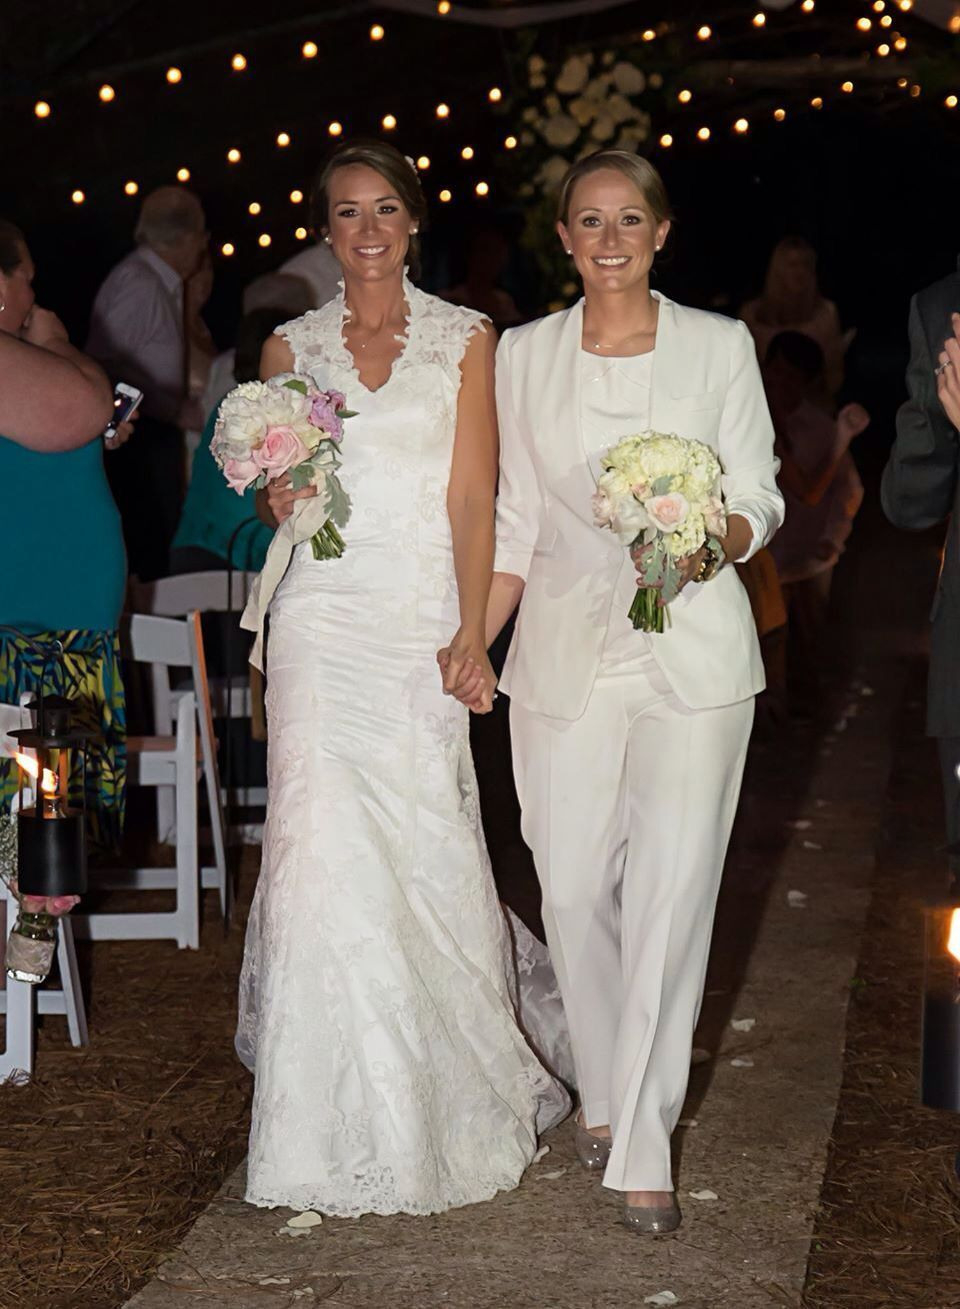 Lesbian Wedding, Brides, Two Brides, Vintage Wedding, Pants